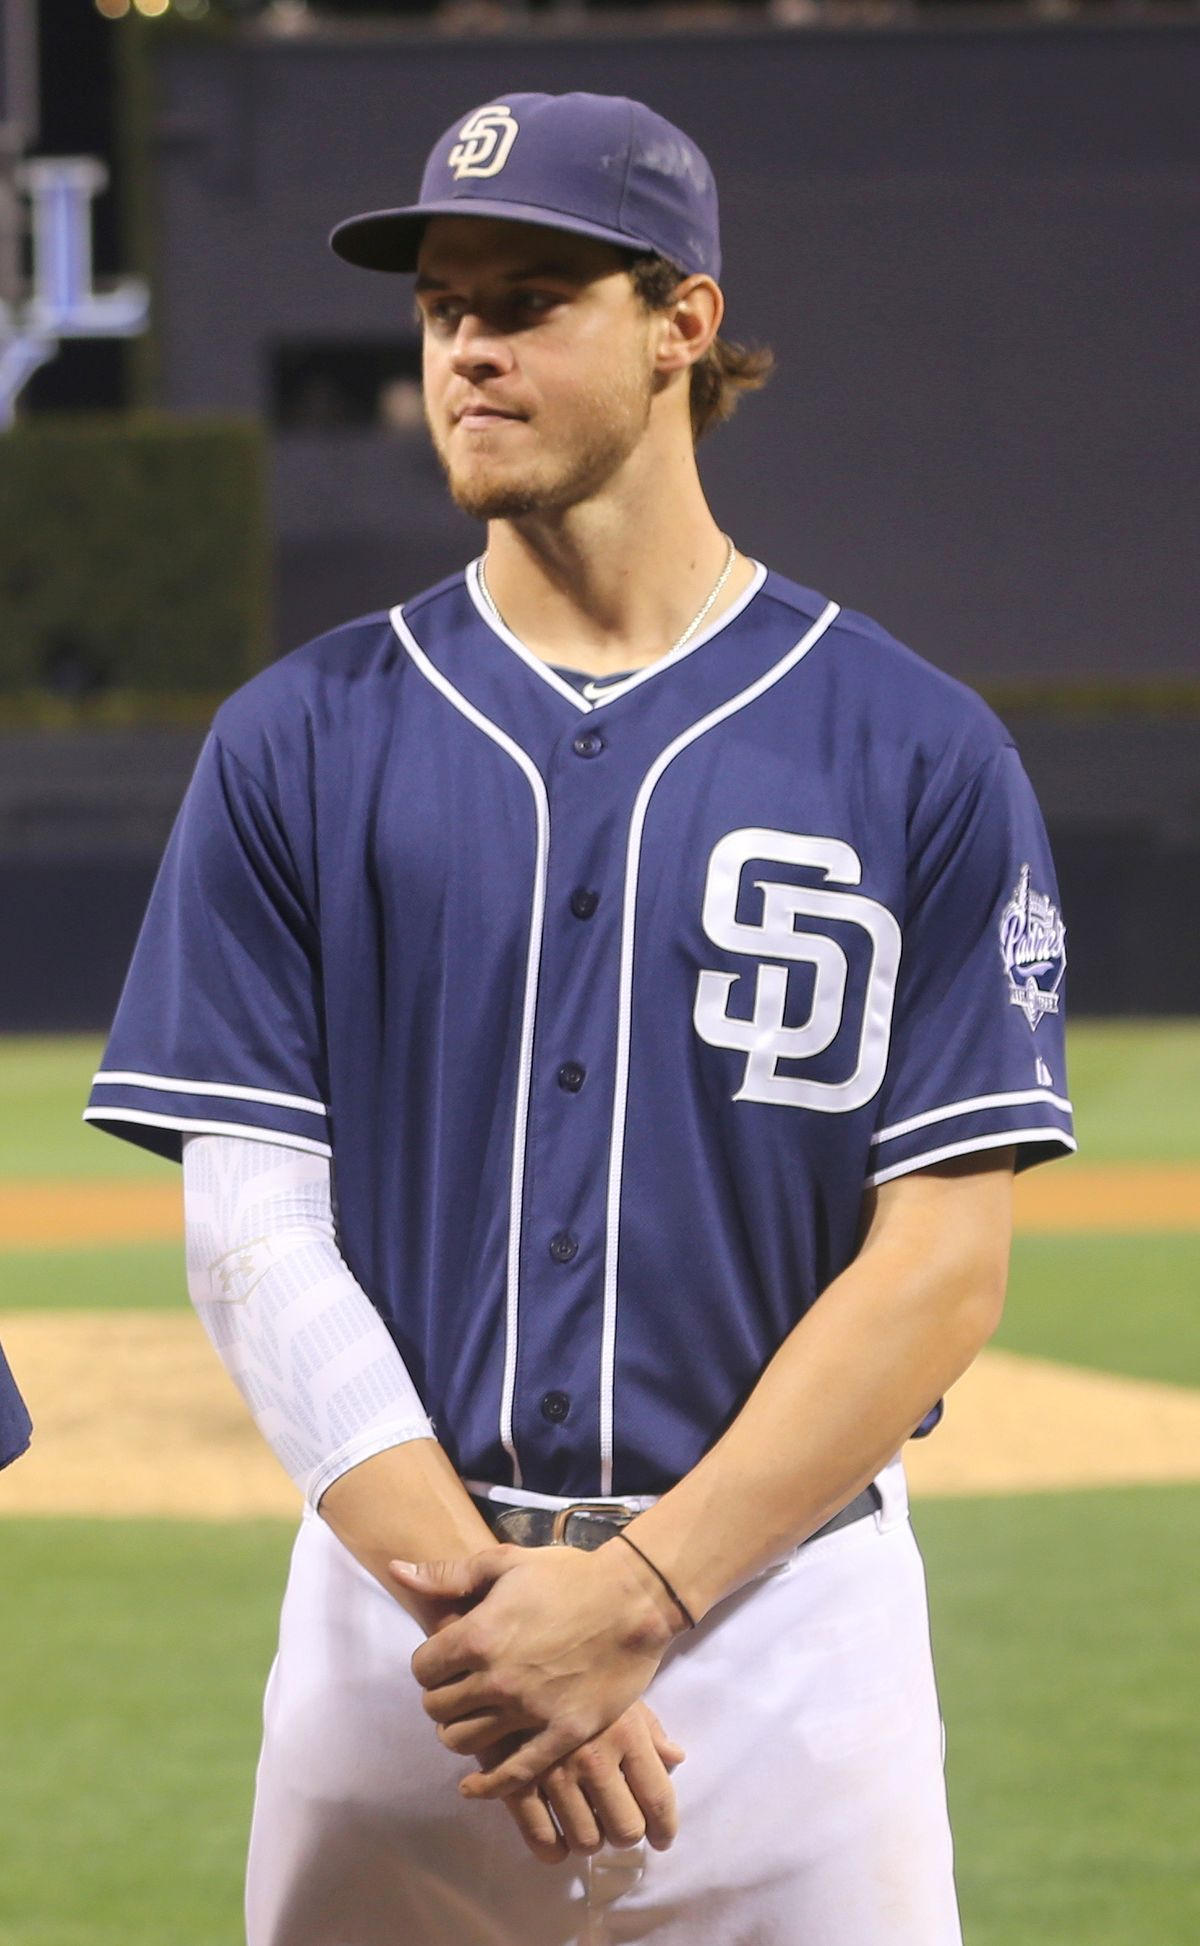 e0179d512 Wil Myers - Wikipedia